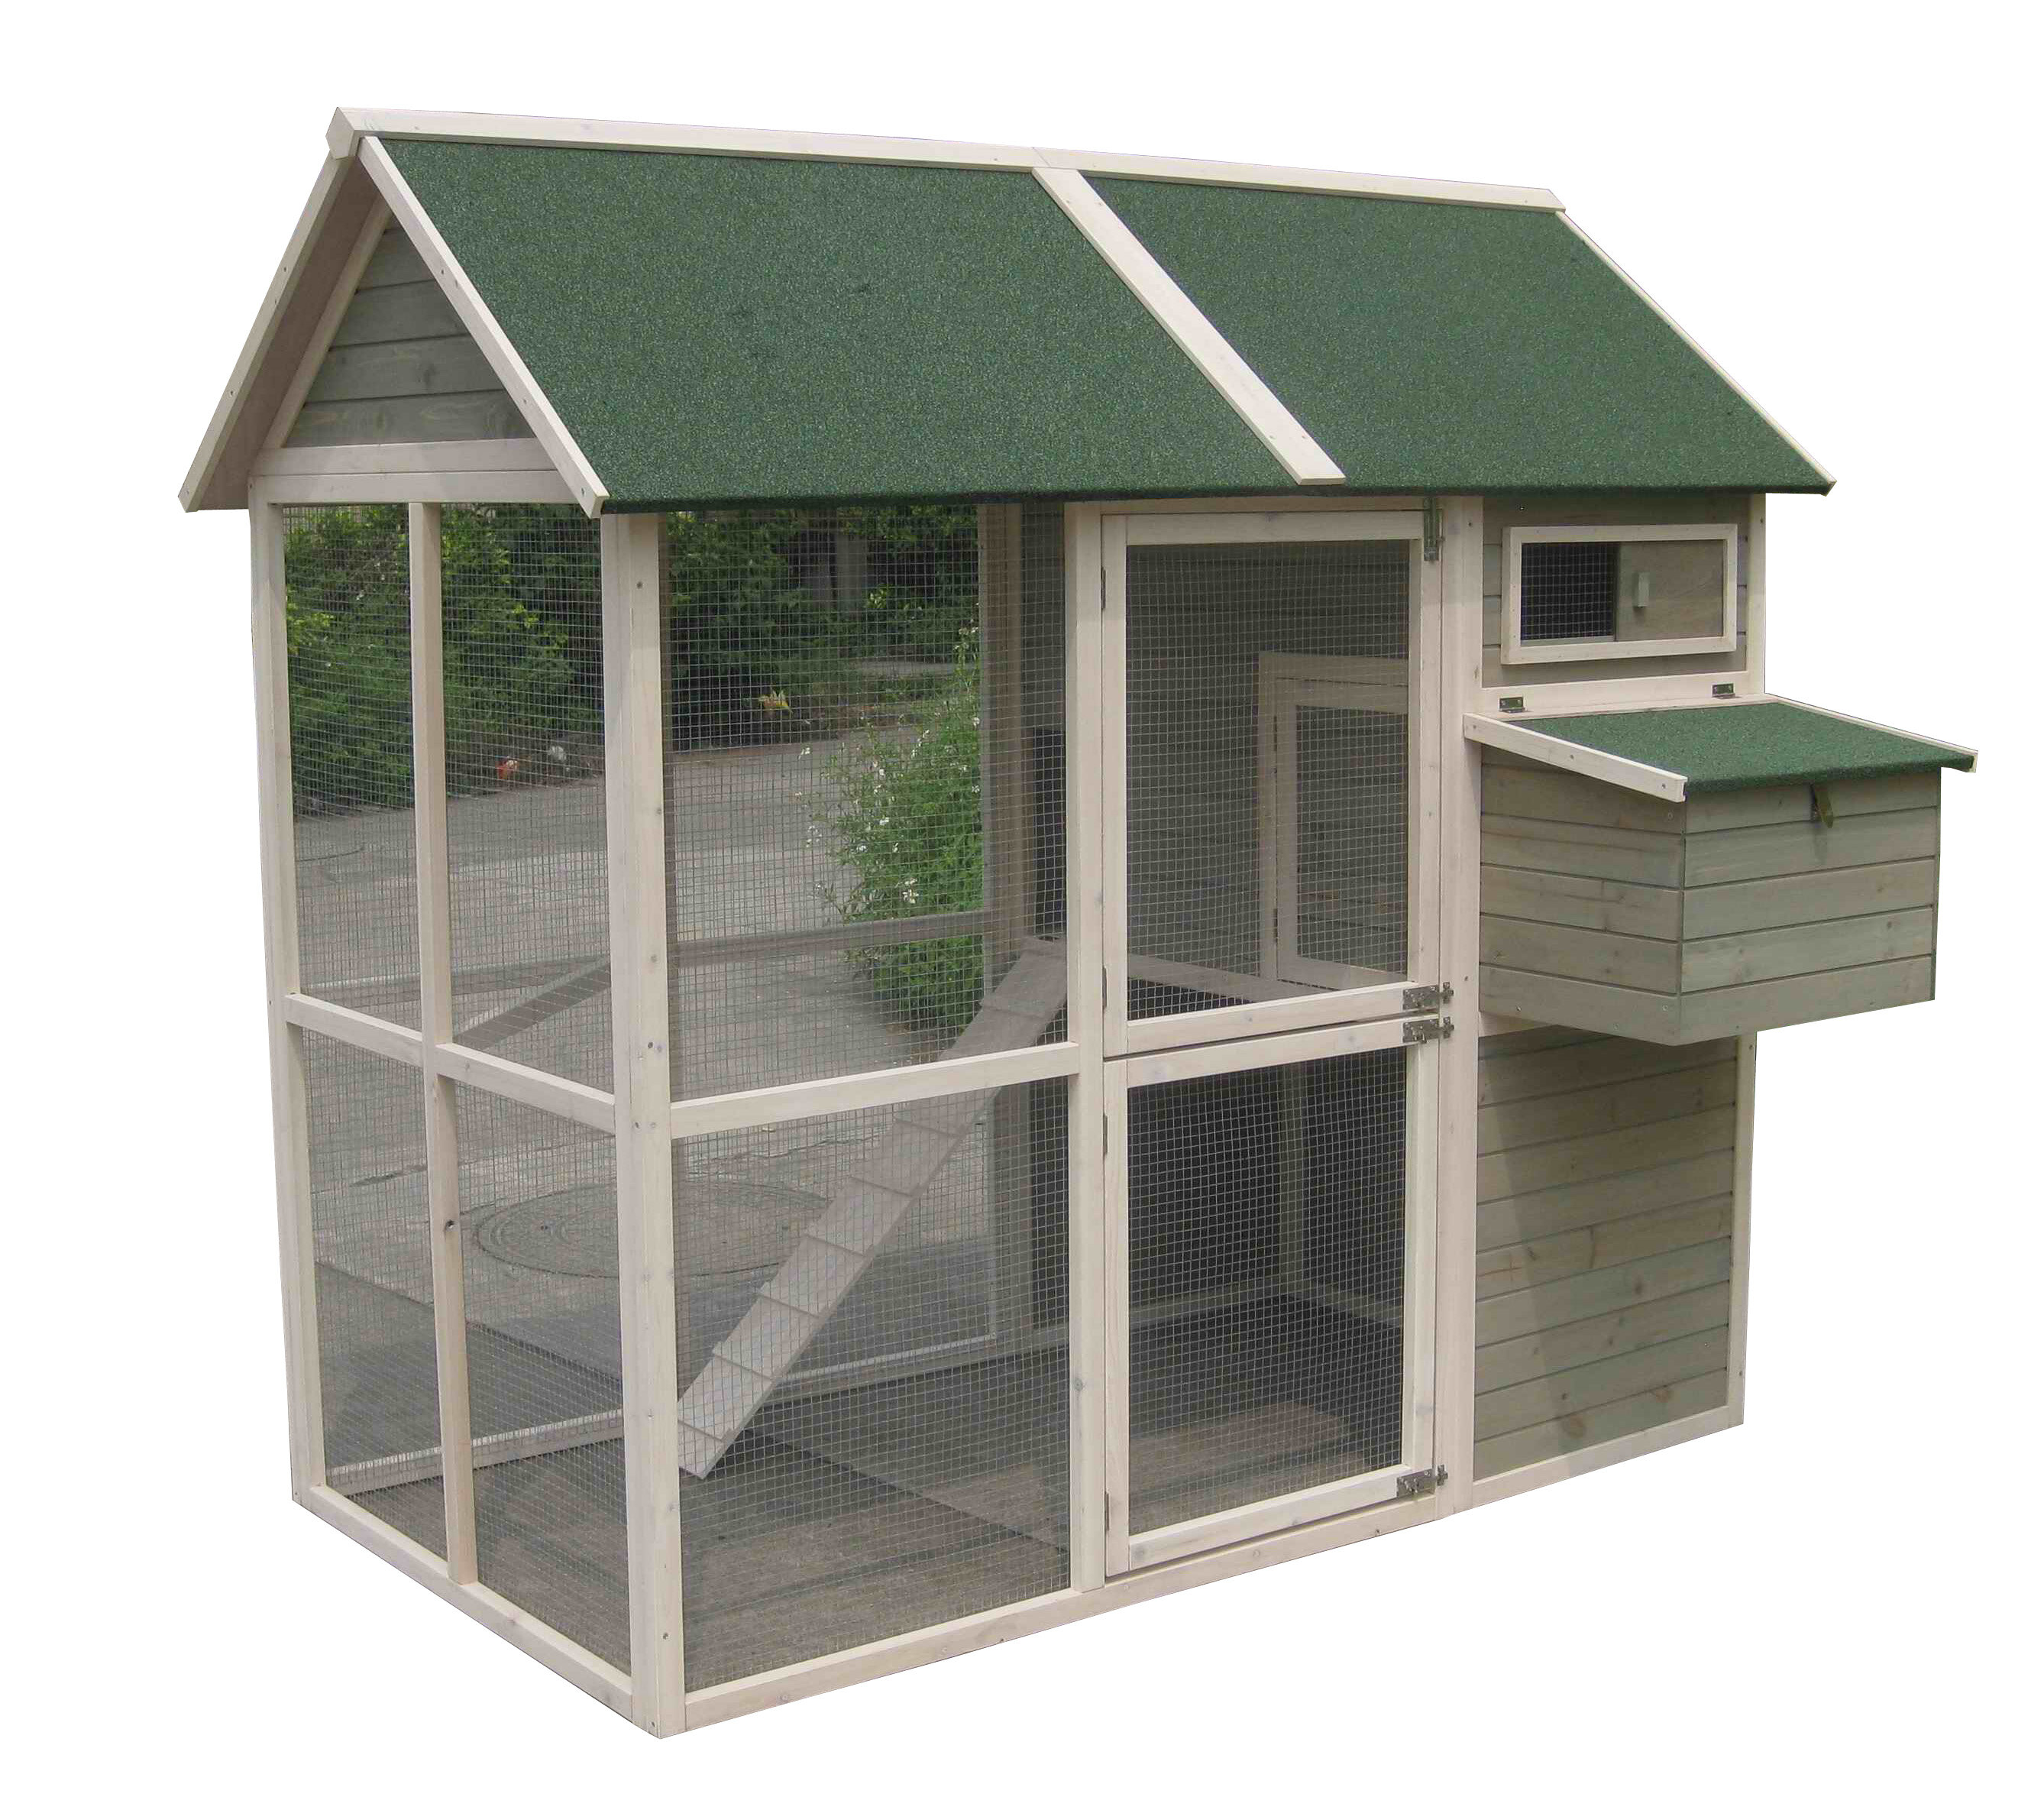 Coops and Feathers Walk-in Chicken Coop with Chicken Run